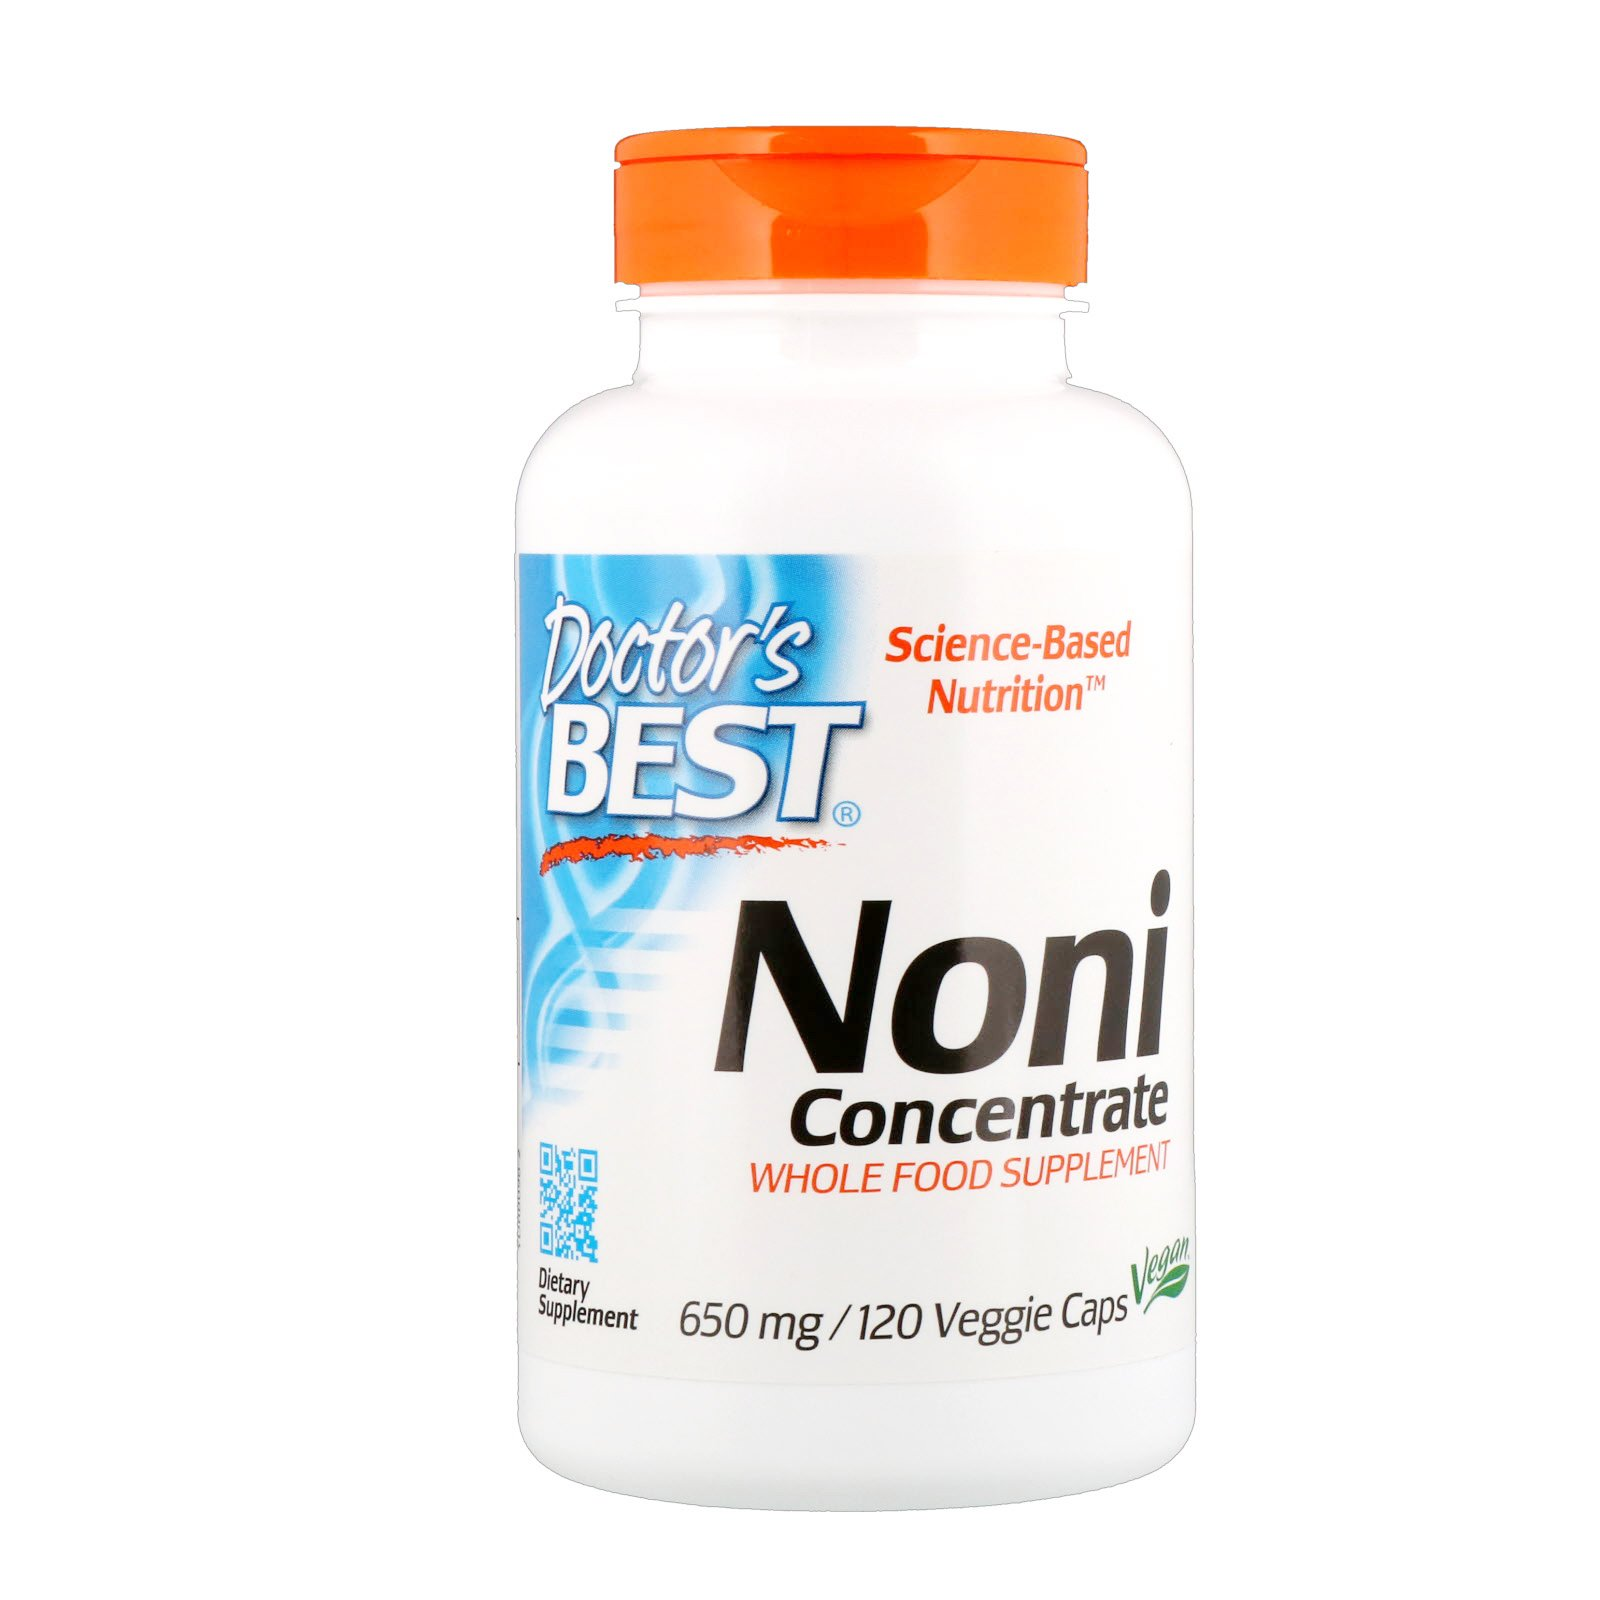 Doctor's Best Noni Concentrate (650 mg), 120 Veggie Caps by Doctor's Best (Image #1)